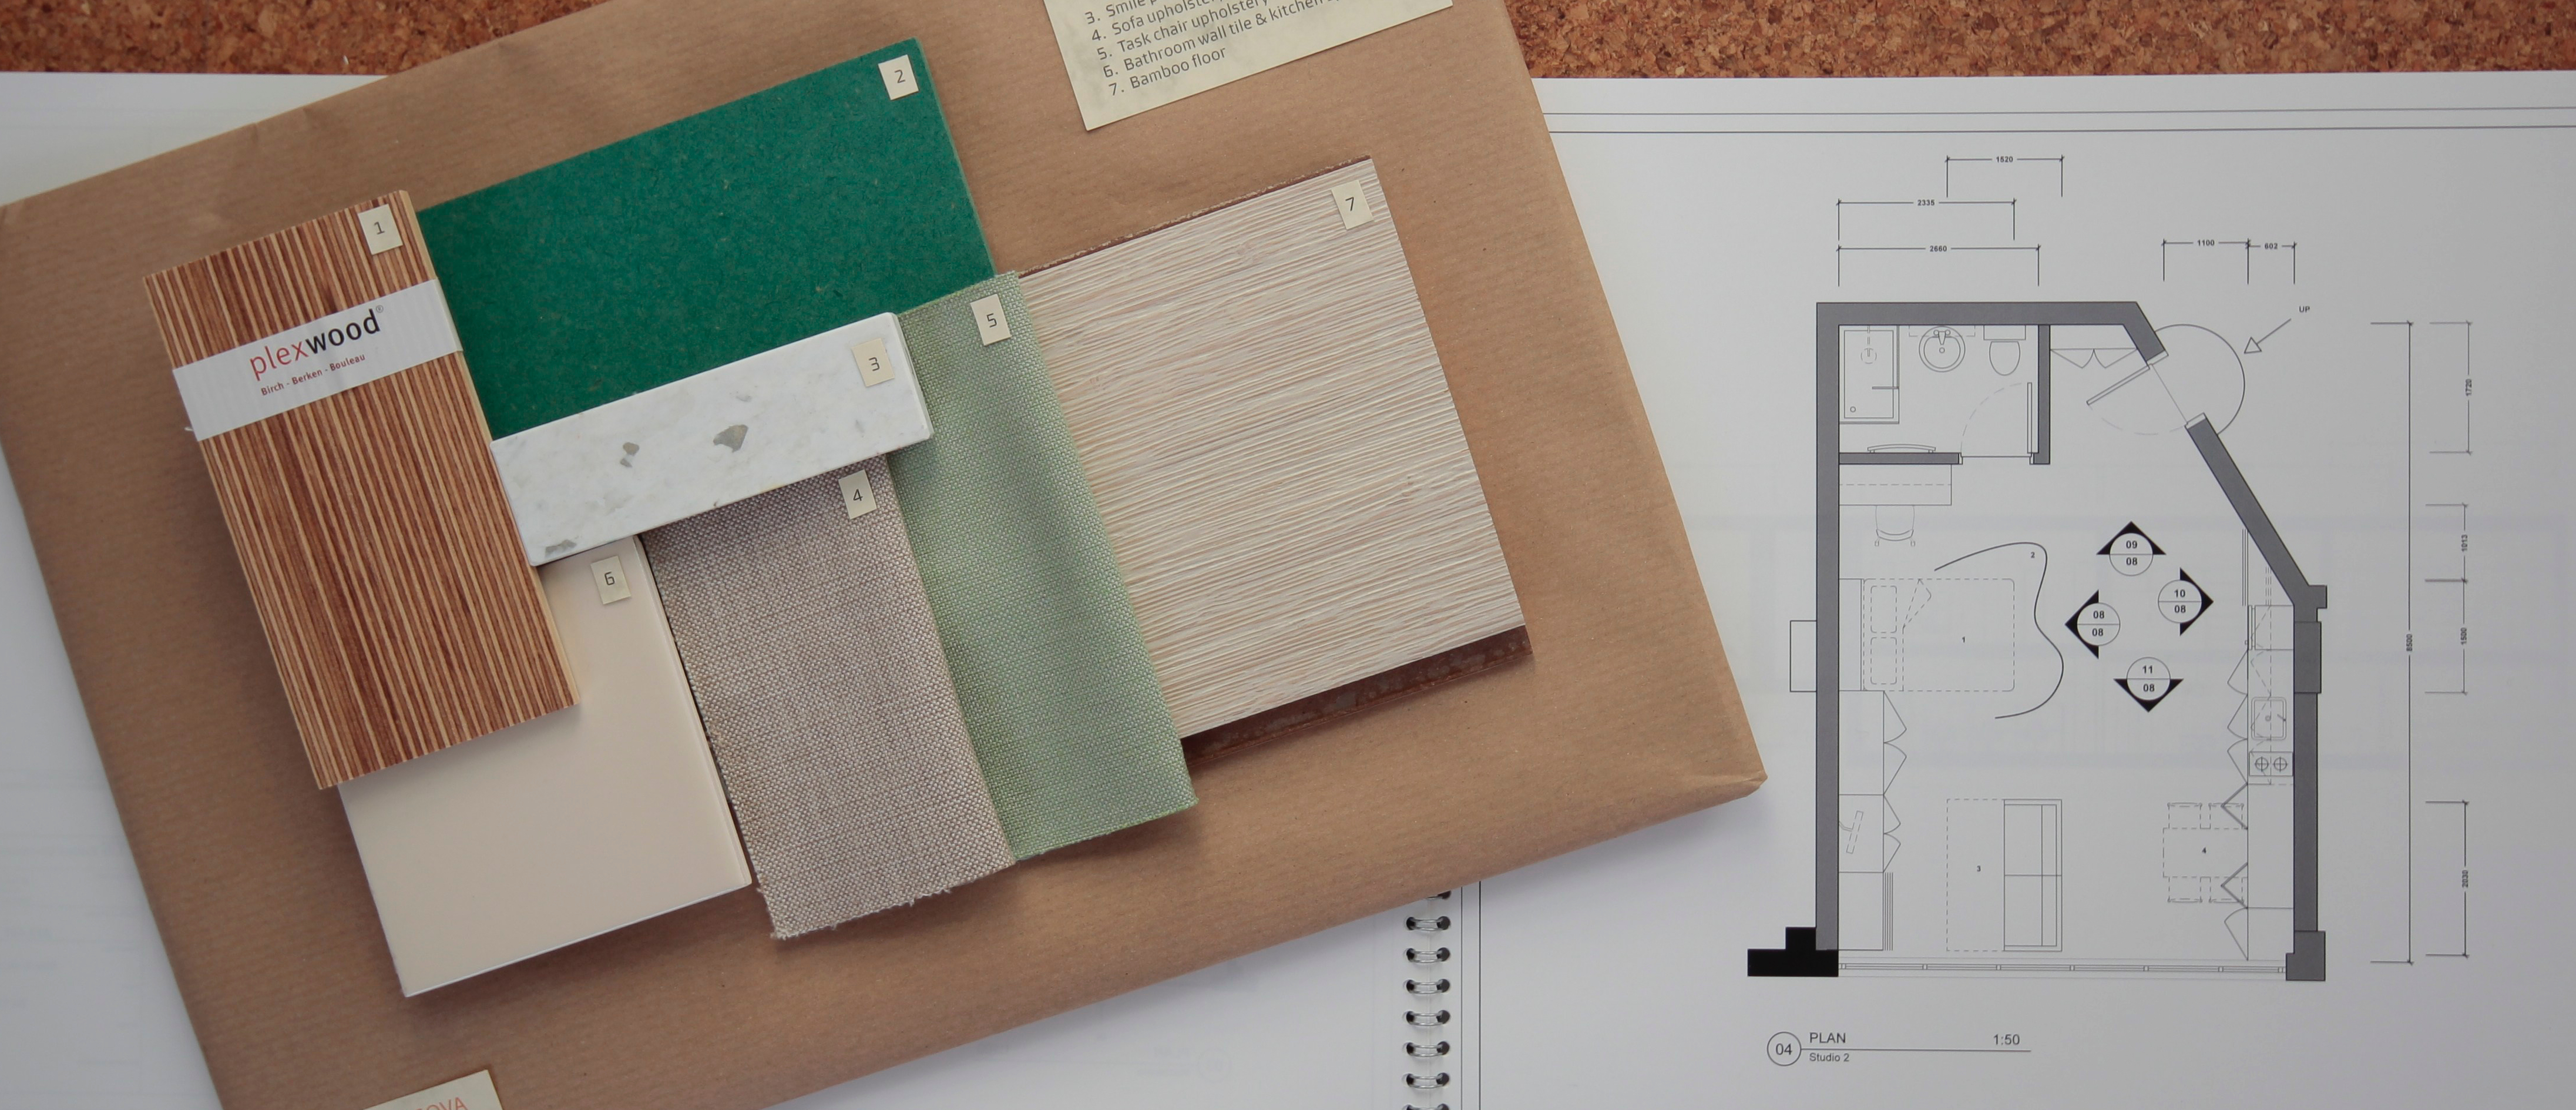 Interior mood boards and plans